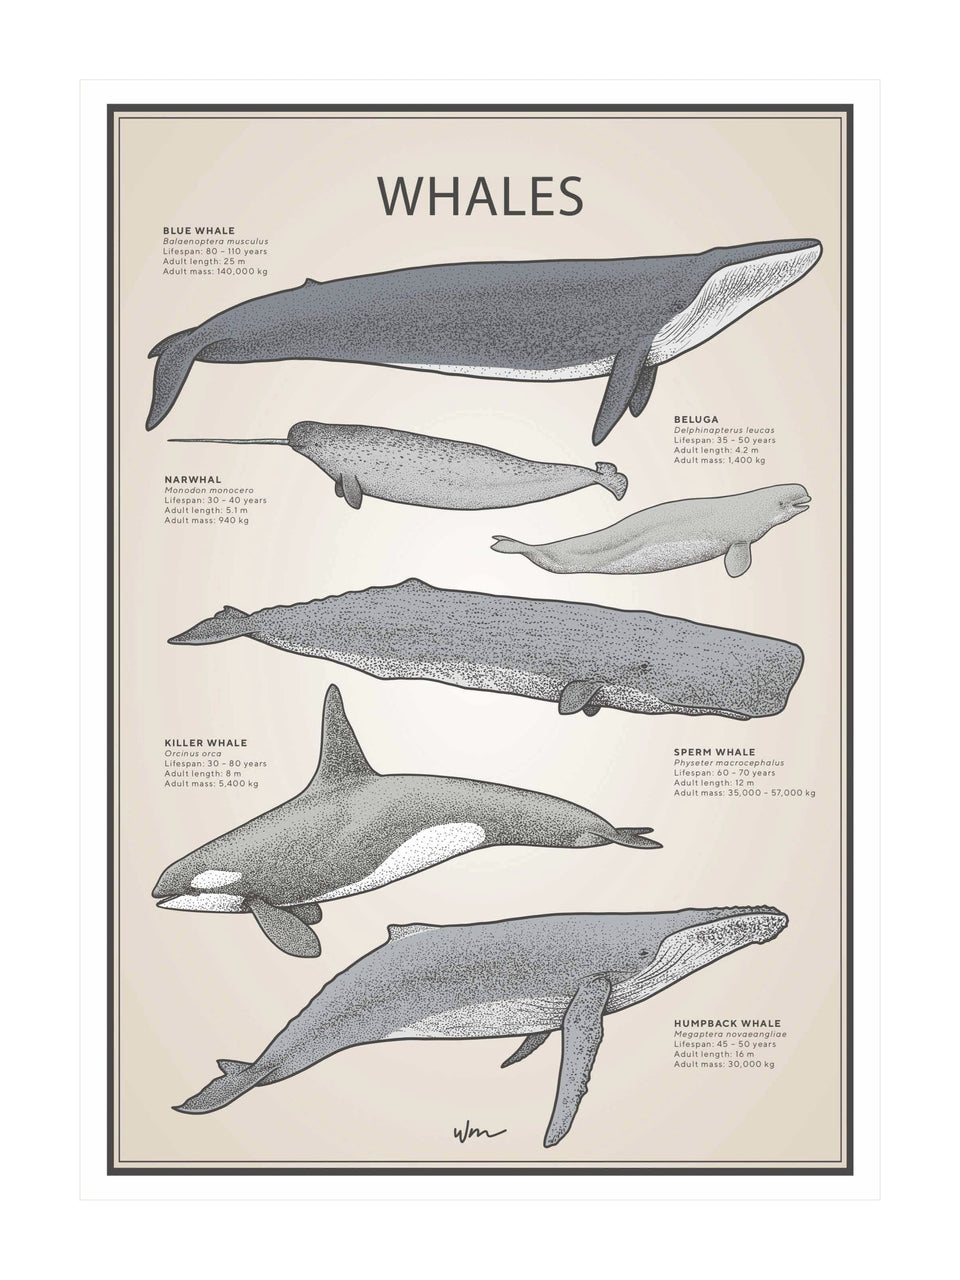 Whales poster decal - Vintage